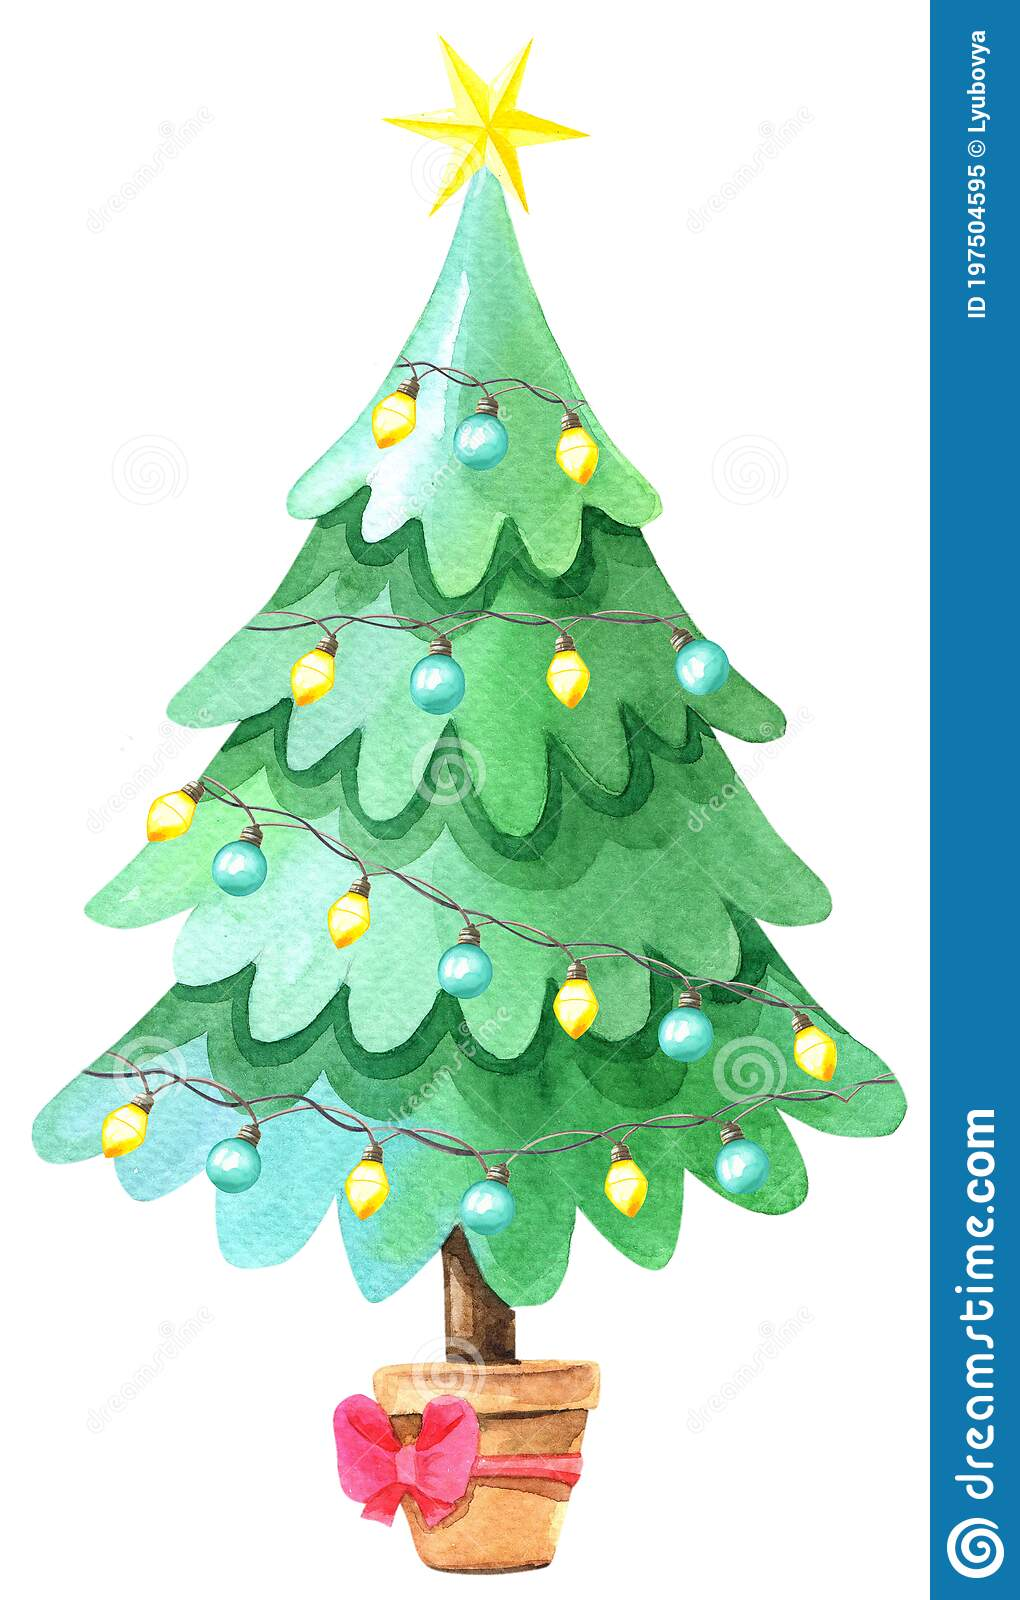 5 682 Christmas Tree Cartoon Photos Free Royalty Free Stock Photos From Dreamstime Christmas tree is an essential attribute of christmas and new year. 5 682 christmas tree cartoon photos free royalty free stock photos from dreamstime